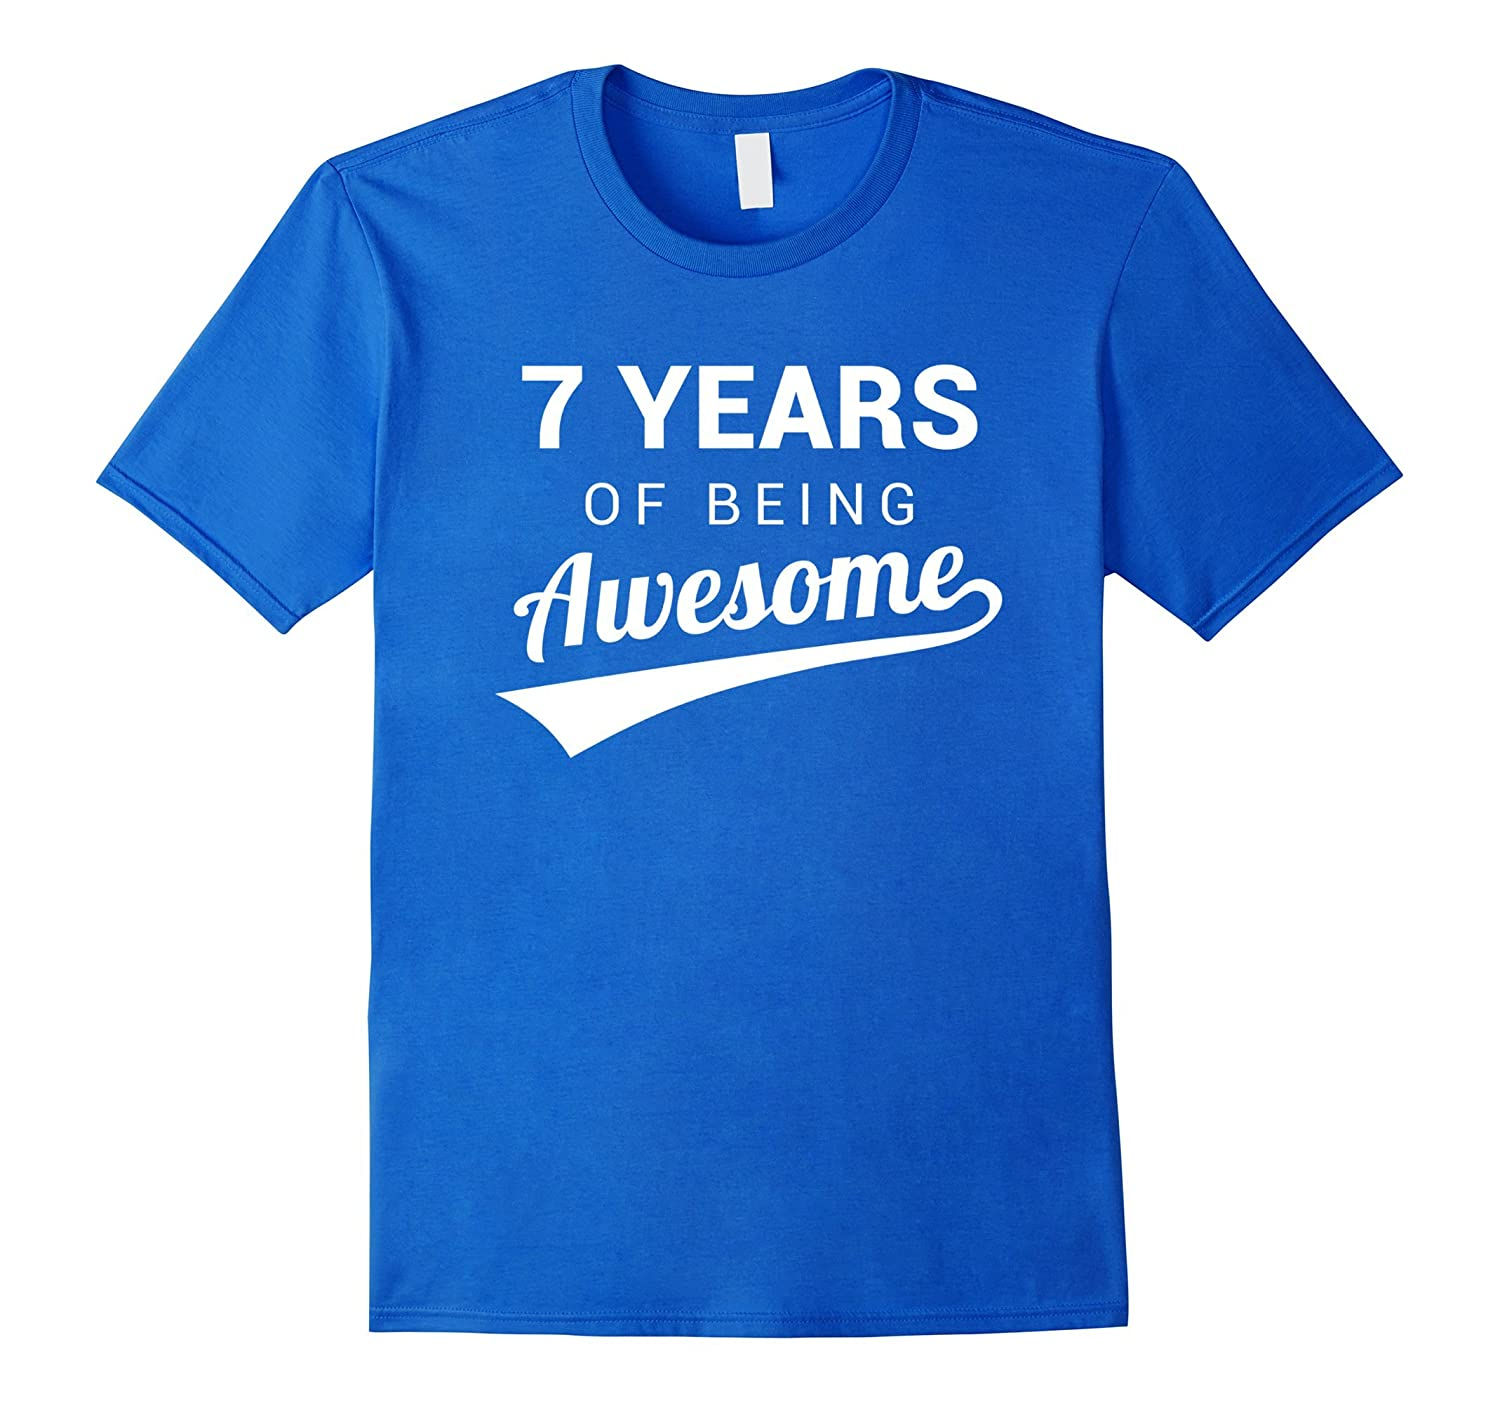 7th Birthday Gift Shirt Funny Awesome 7 Year Old Bday Idea BN